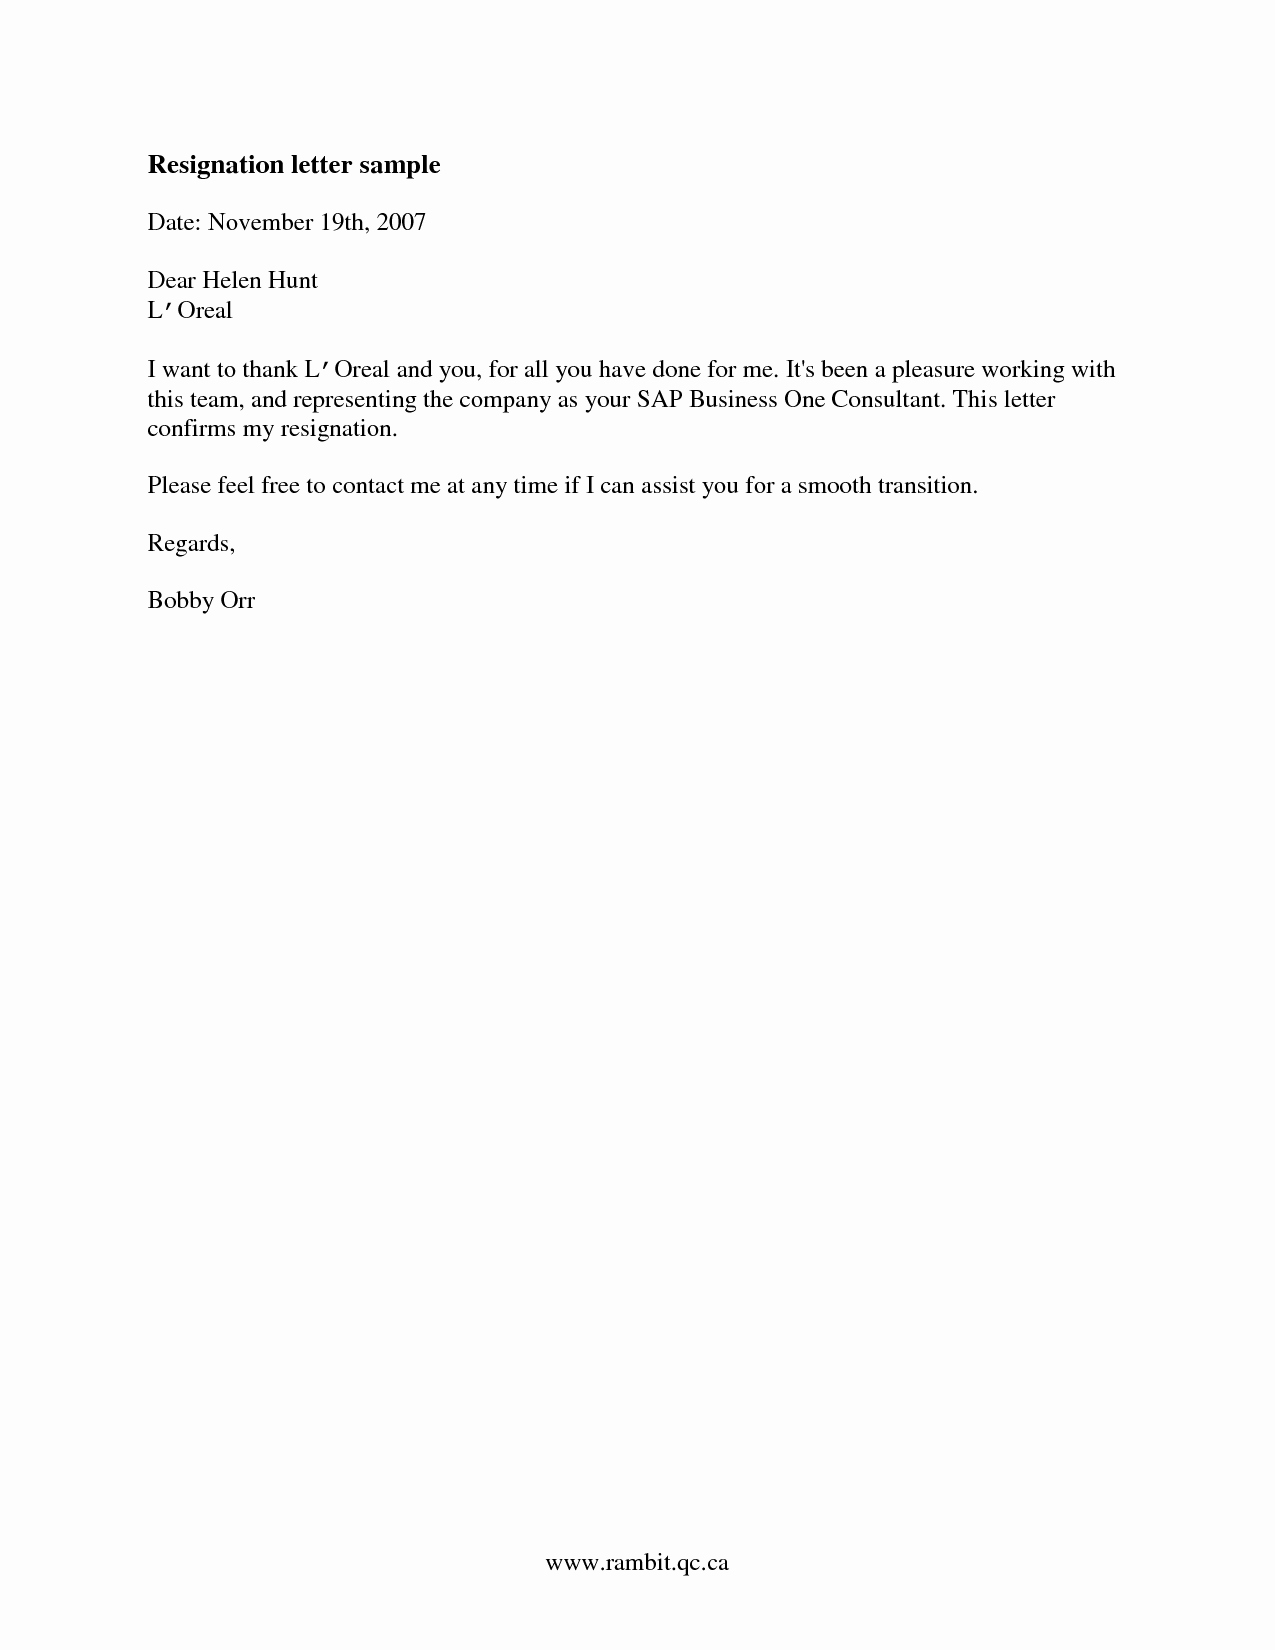 Resignation Letter Sample Free Beautiful Sample Of Good Resignation Letter Samplebusinessresume